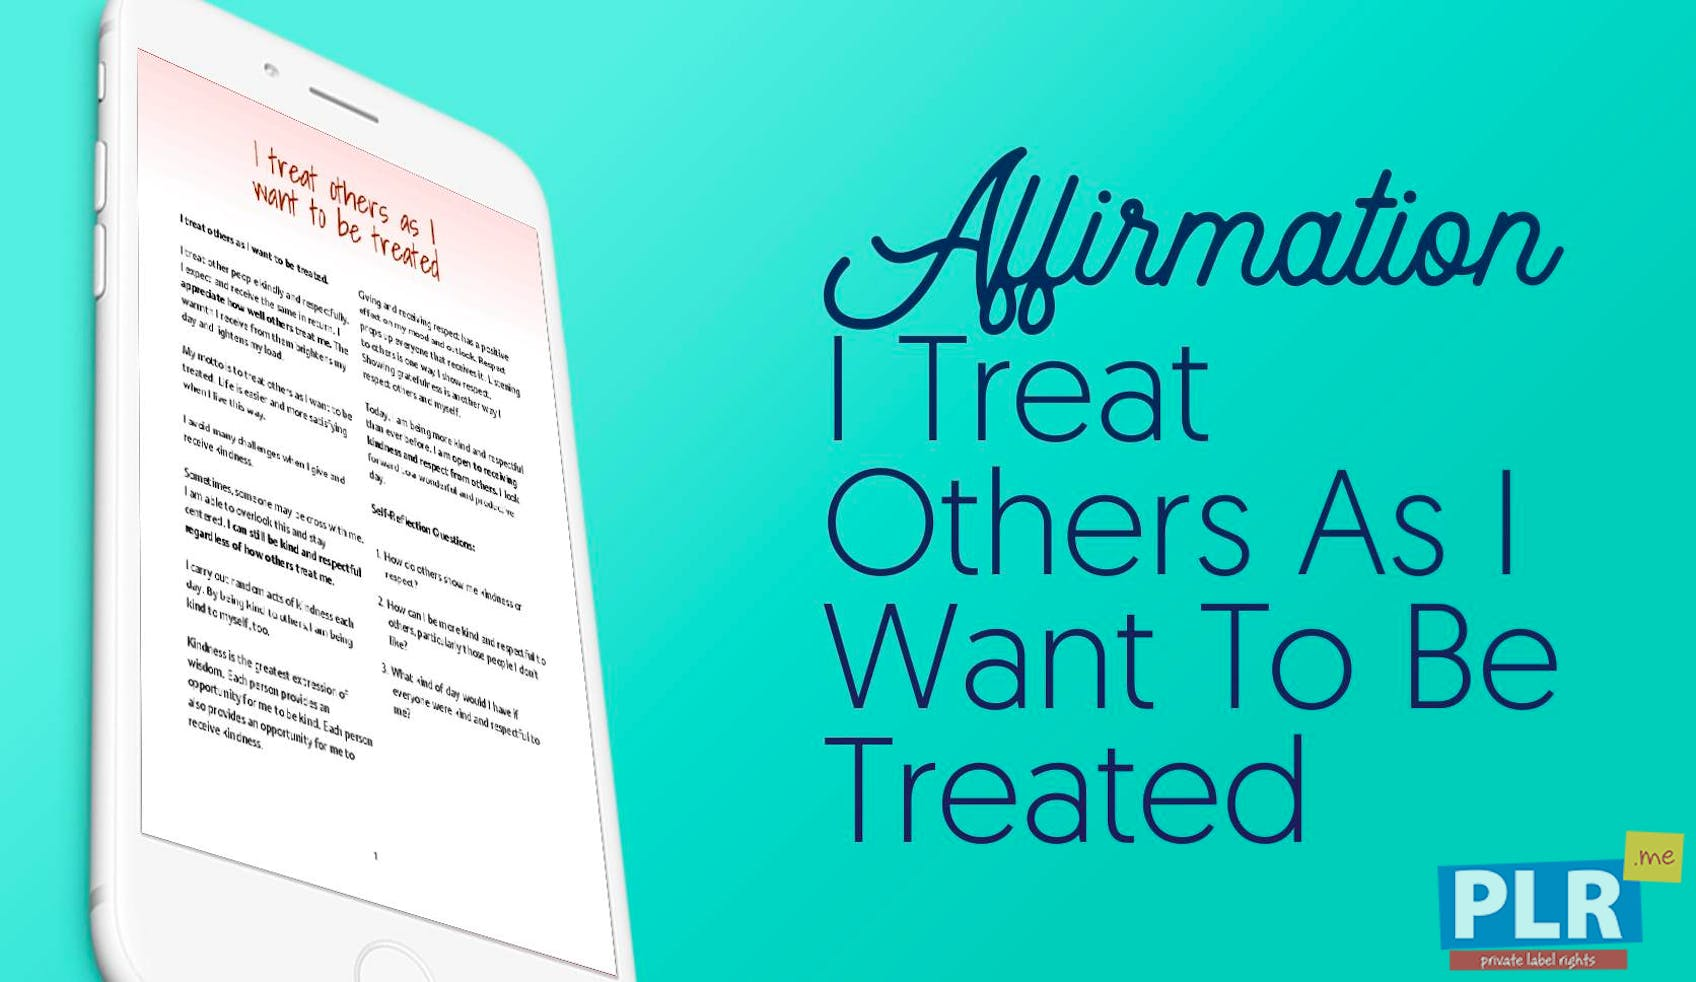 I Treat Others As I Want To Be Treated